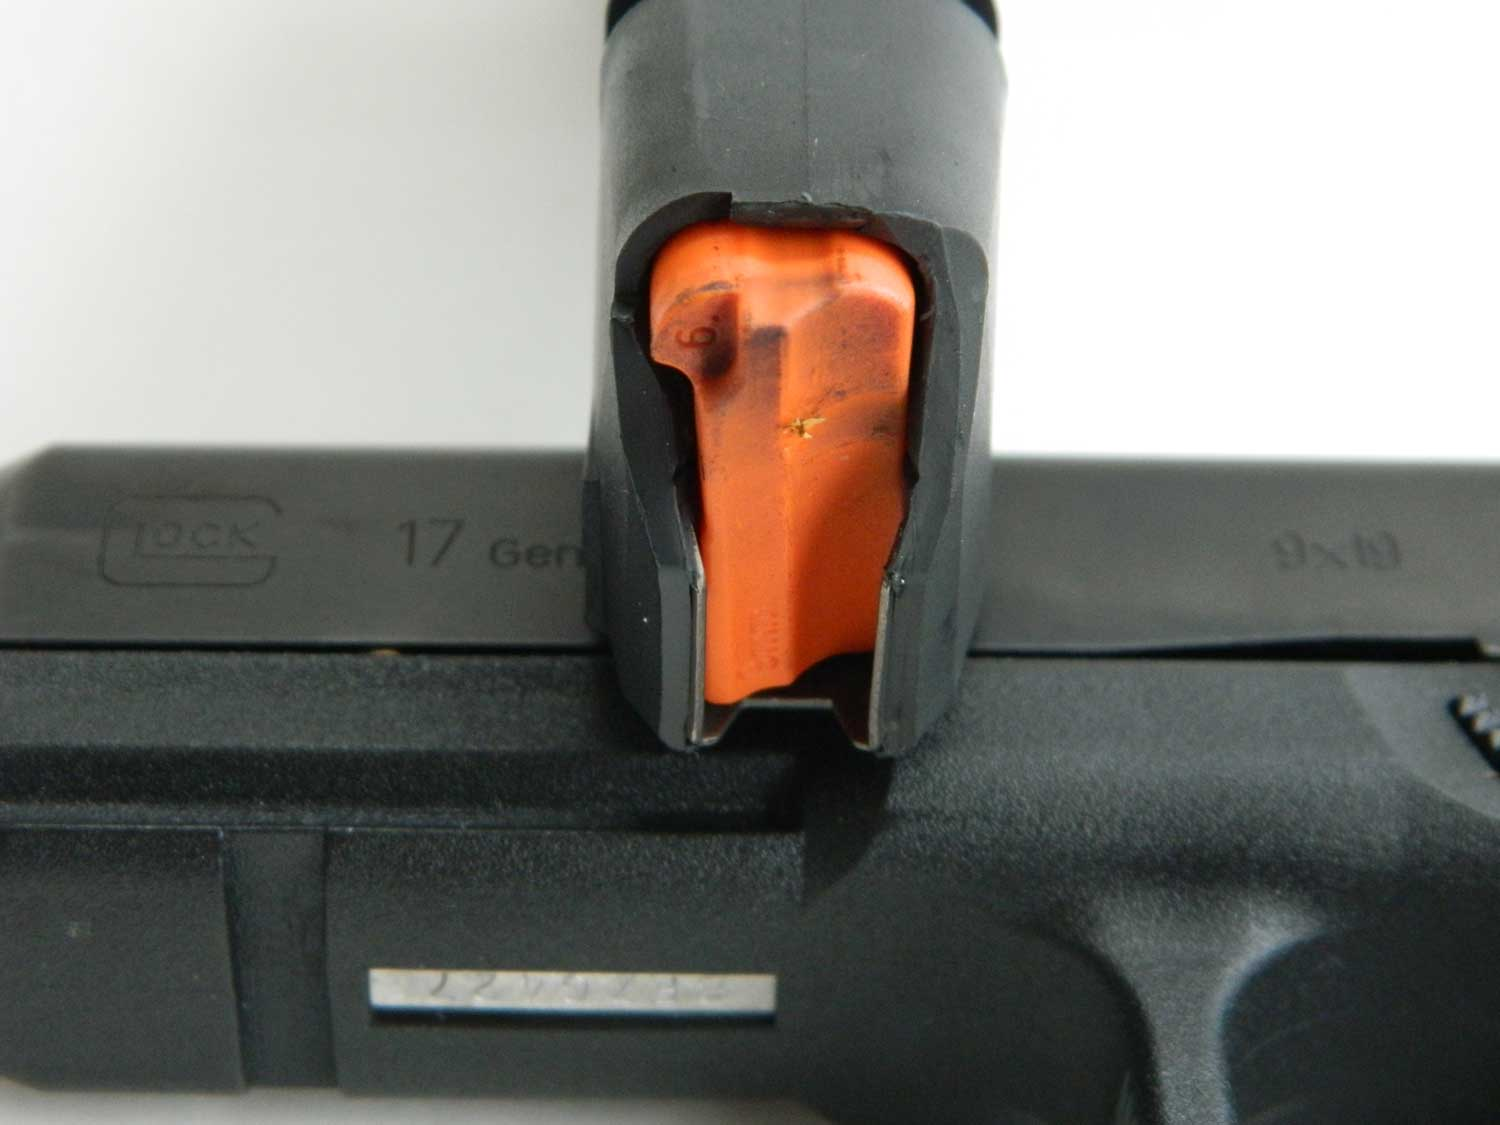 Orange pistol magazine follower